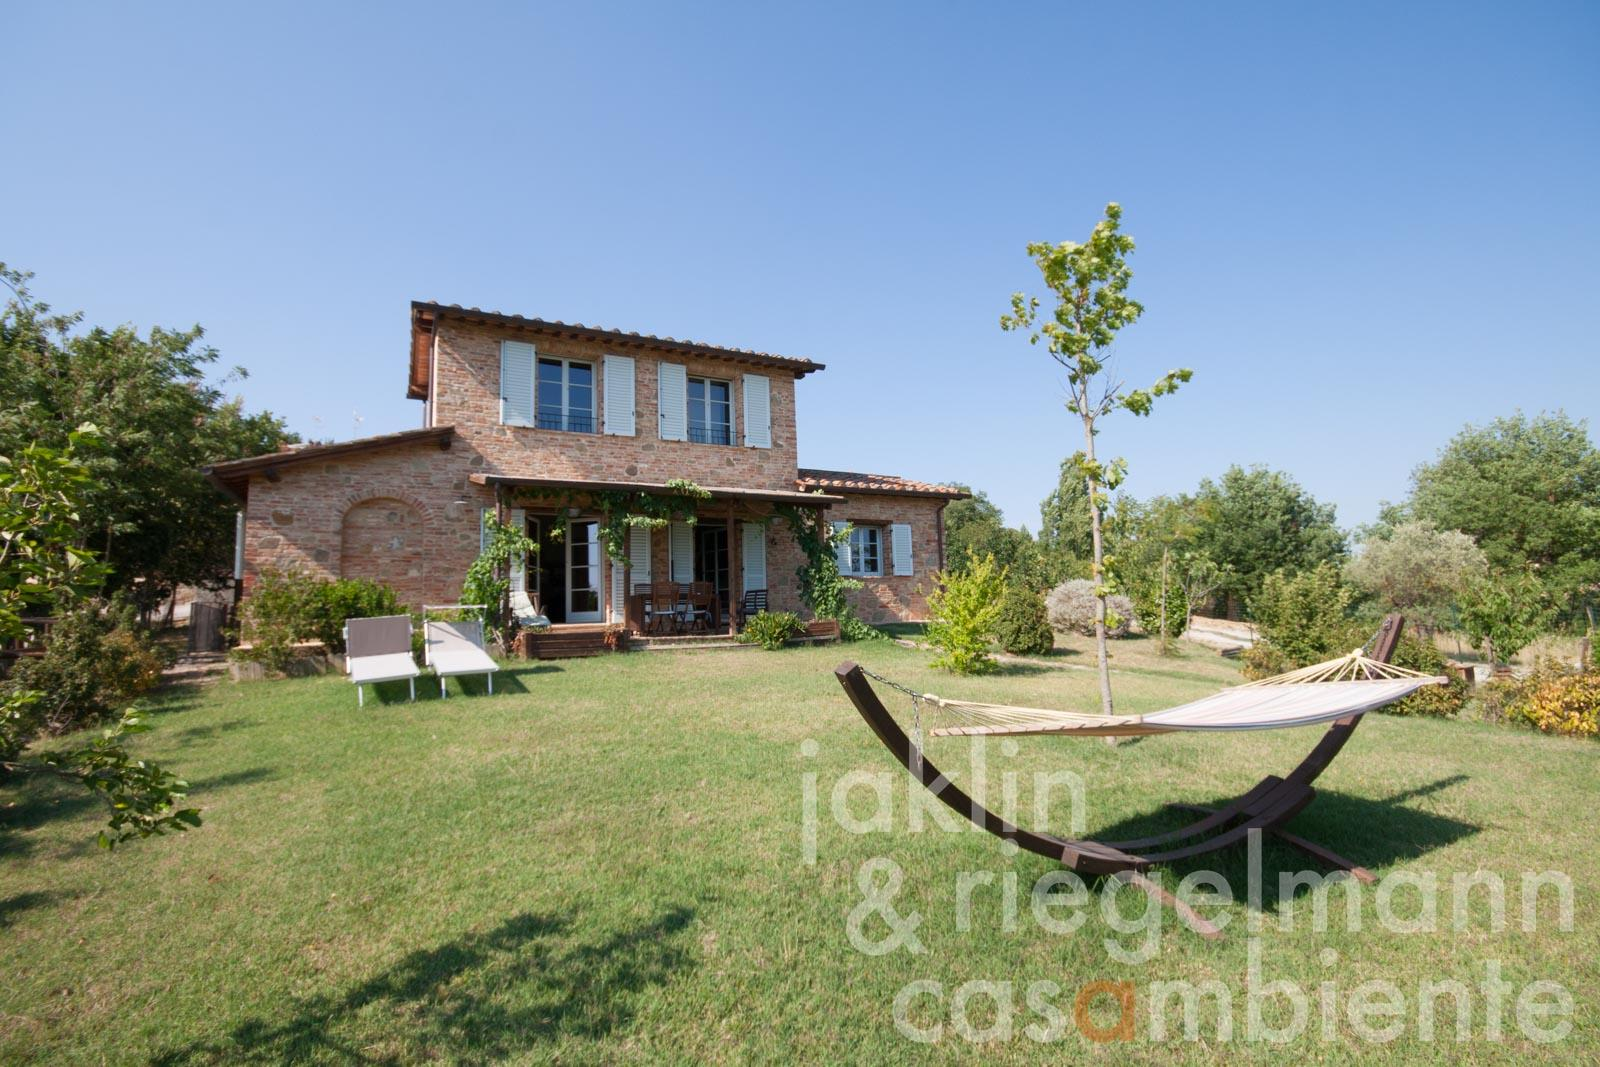 The charming Tuscan country house for sale with garden and small olive grove